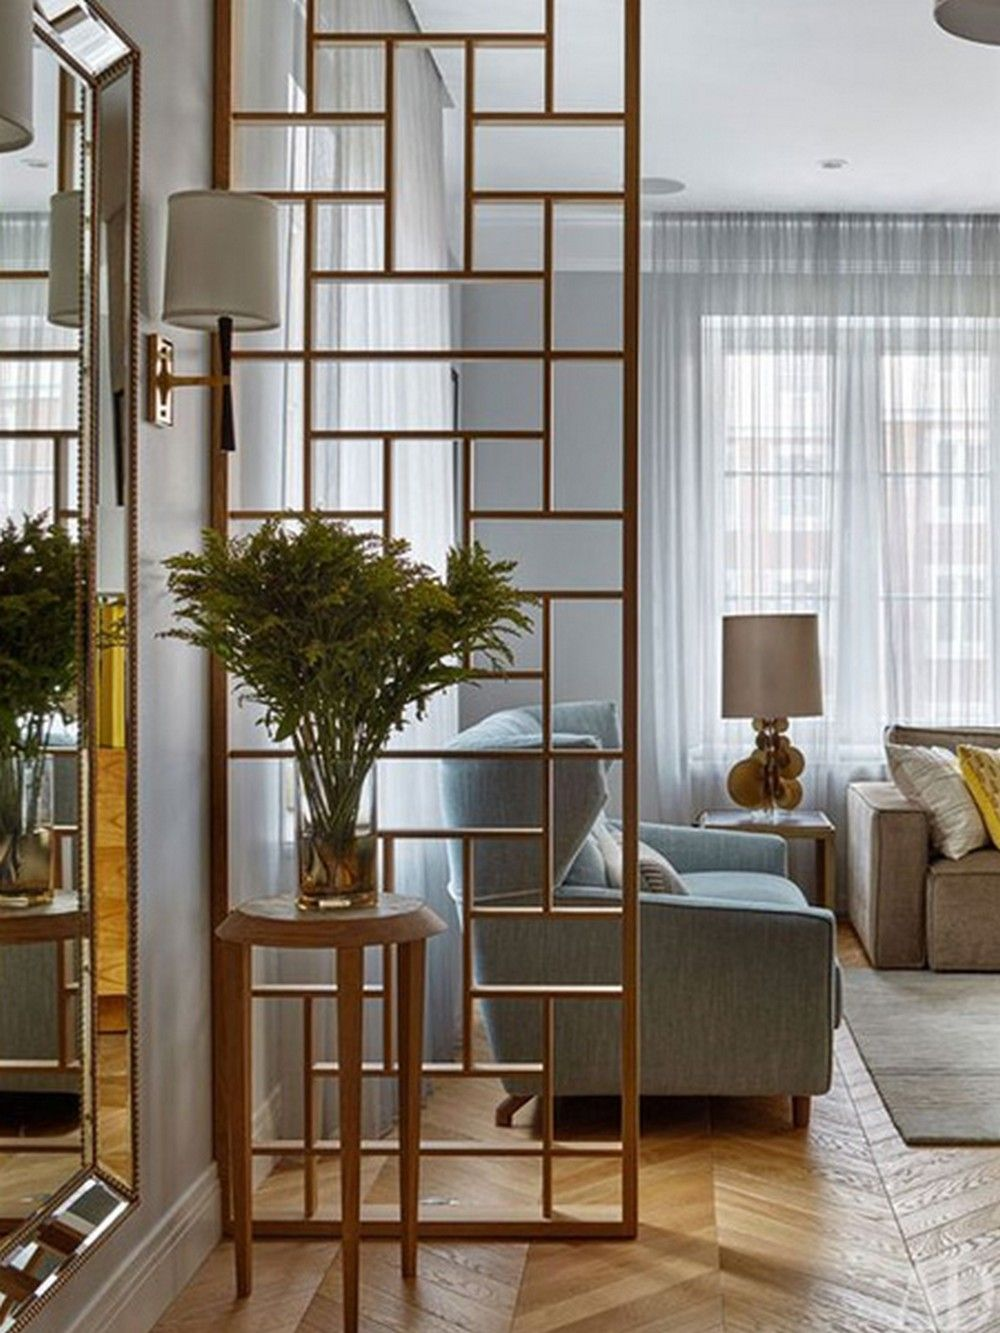 Find the best living room designs ideas to match your style browse through images of also pin by inez ortiz on home rh za pinterest